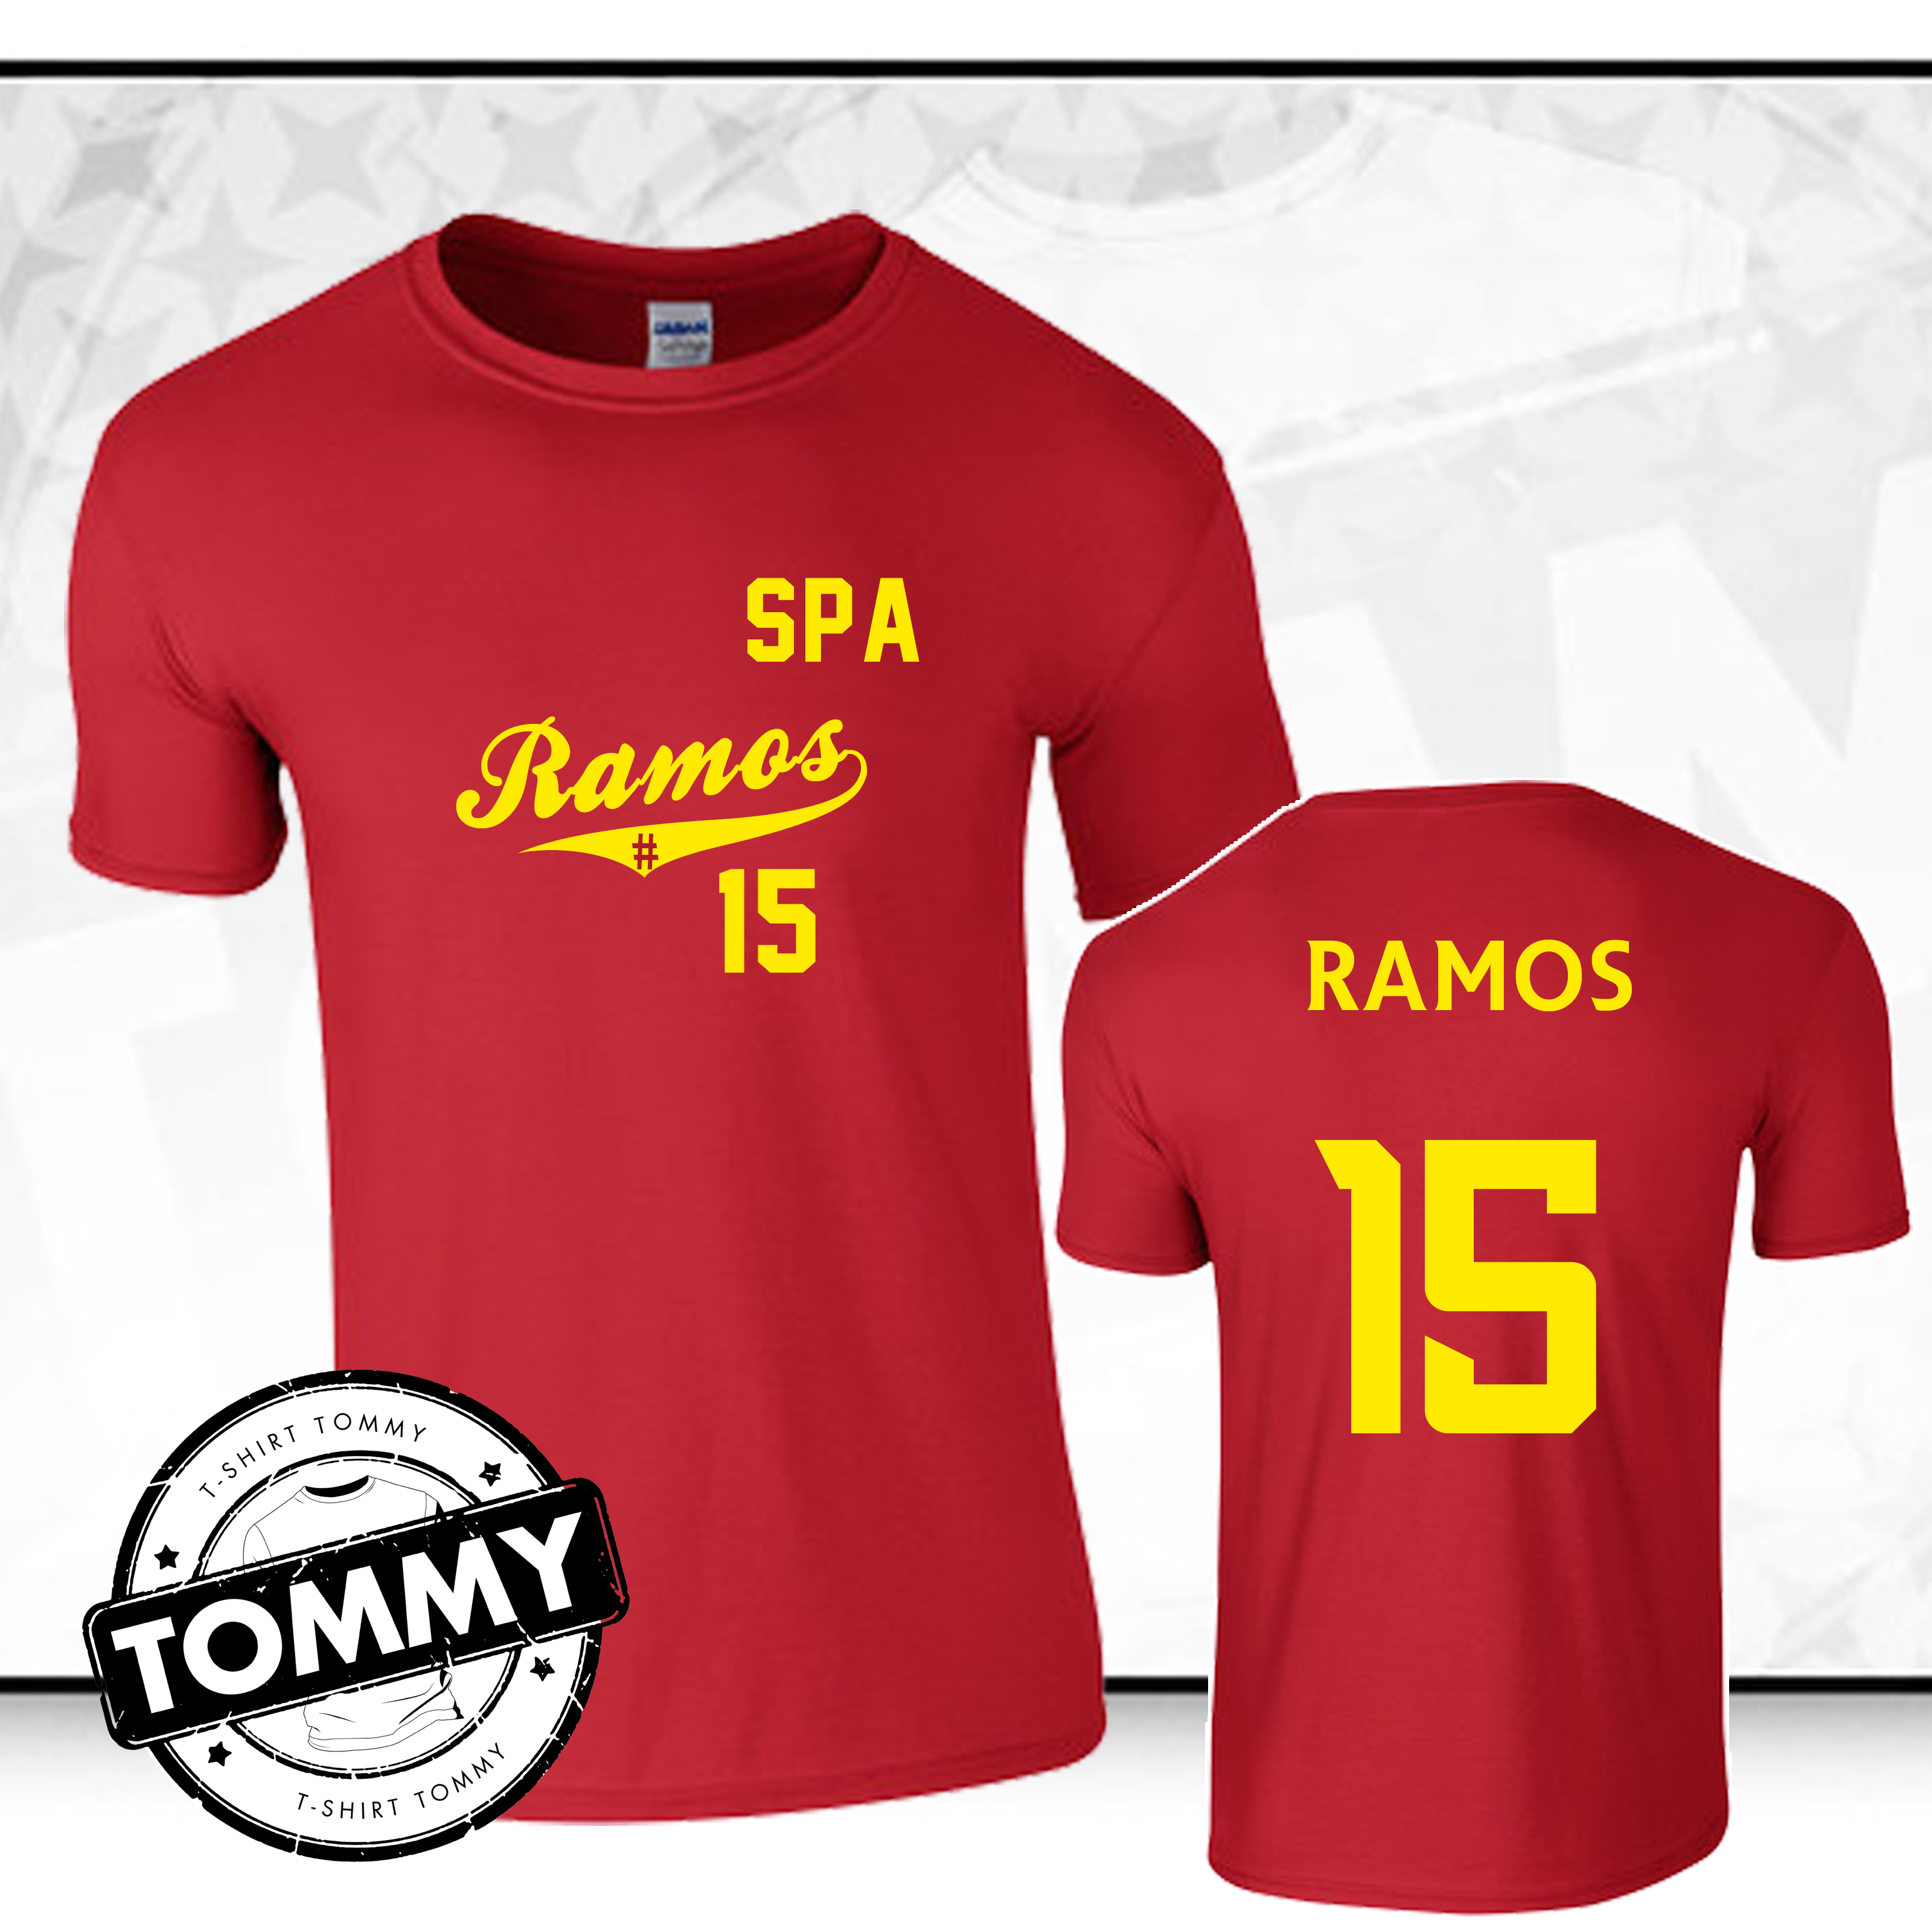 online store 5e478 fa691 Details about Sergio Ramos #15 Spain T-Shirt, Spain World Cup 2018 Fan  T-Shirt Shirt